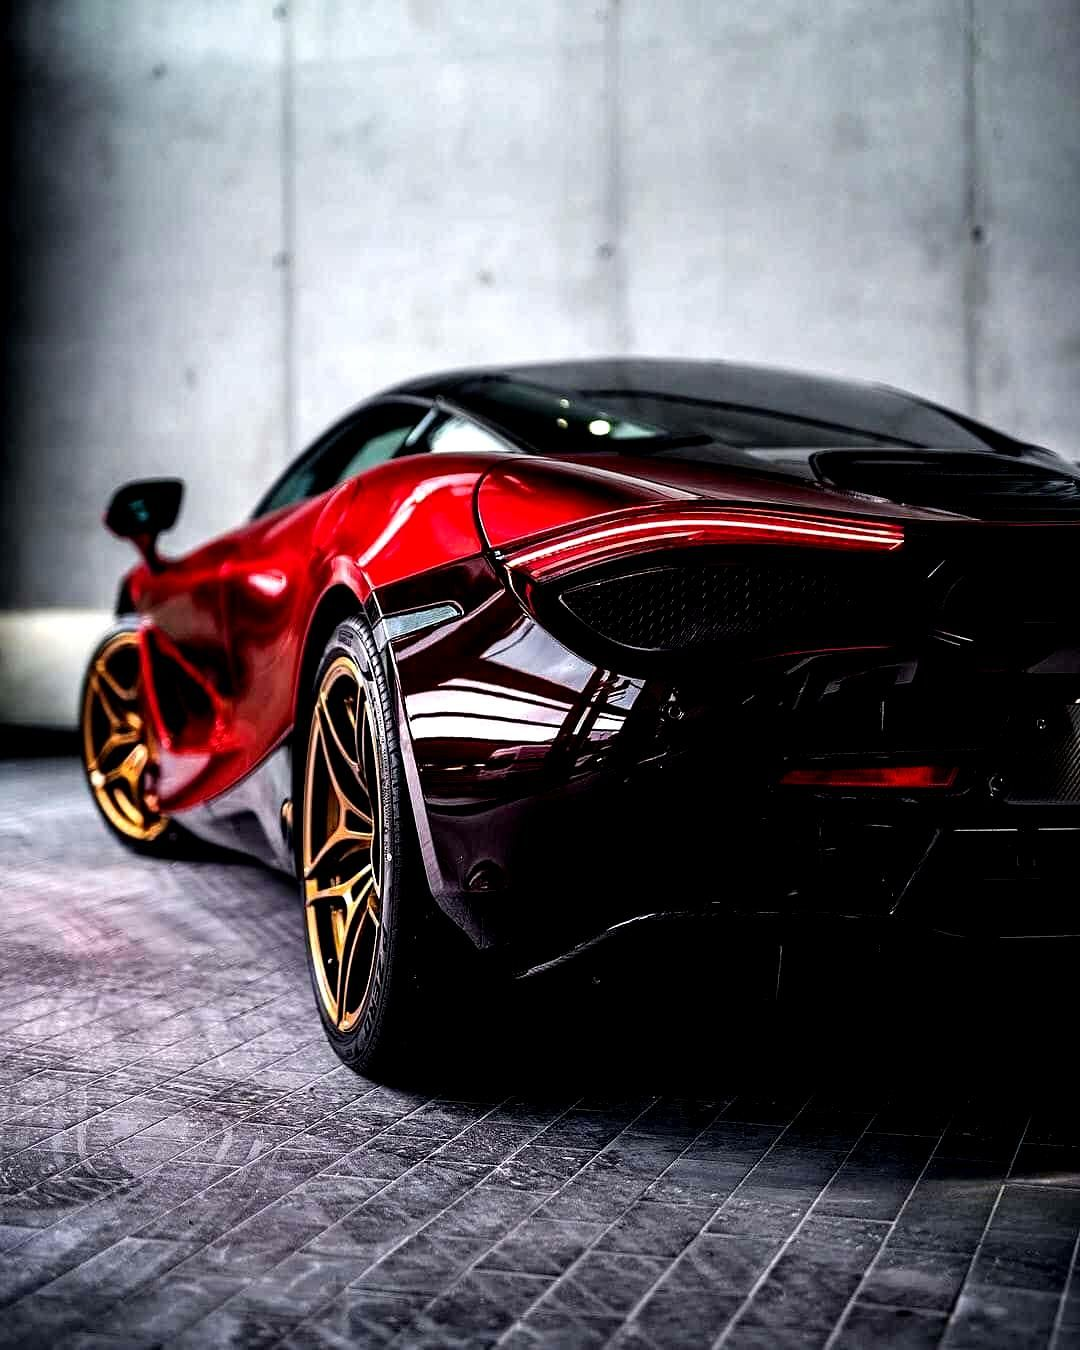 Mclaren Cars 50 Best Page 8 Of 100 Luxury Sports Cars Com In 2020 Mclaren Cars Sports Car Super Cars